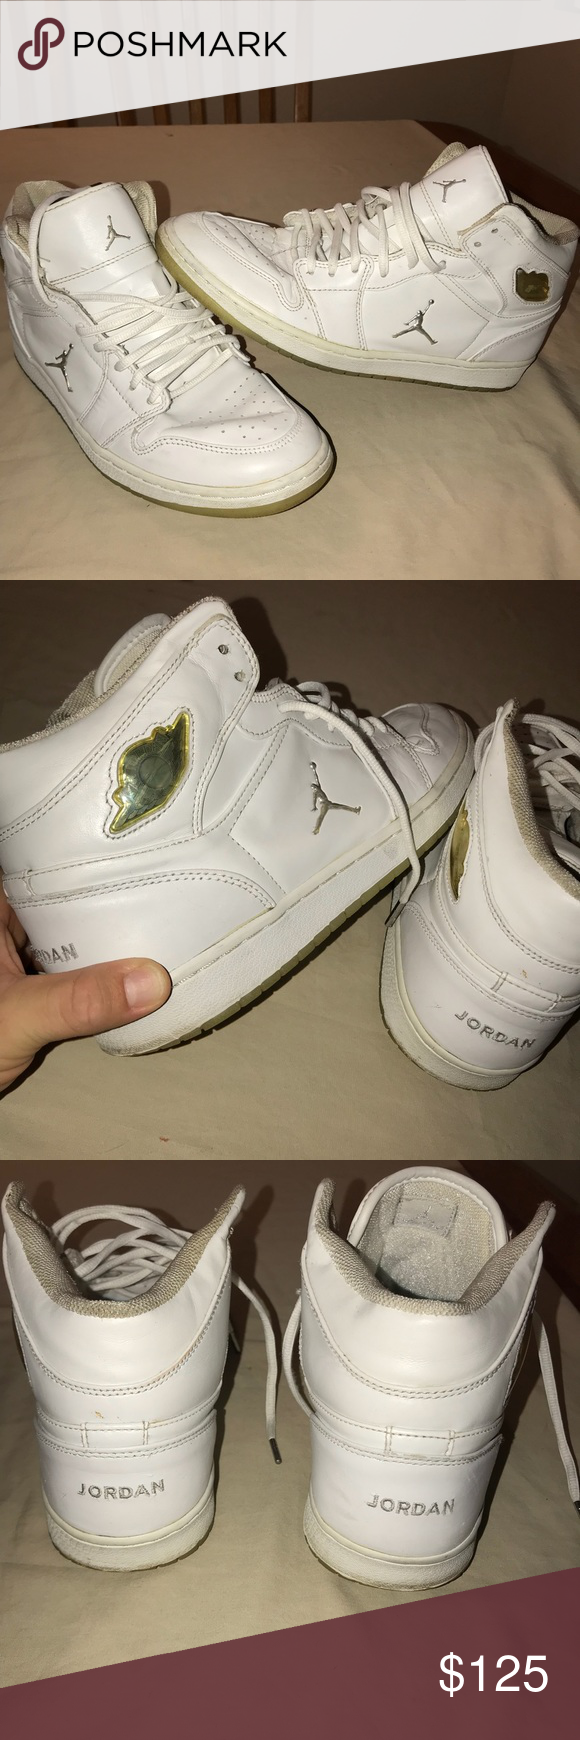 8b2ef967a082 Jordan 1 retro chrome (2002) Used condition. Please see pictures for wear.  No insoles. Great condition for being 17 years old. No holes